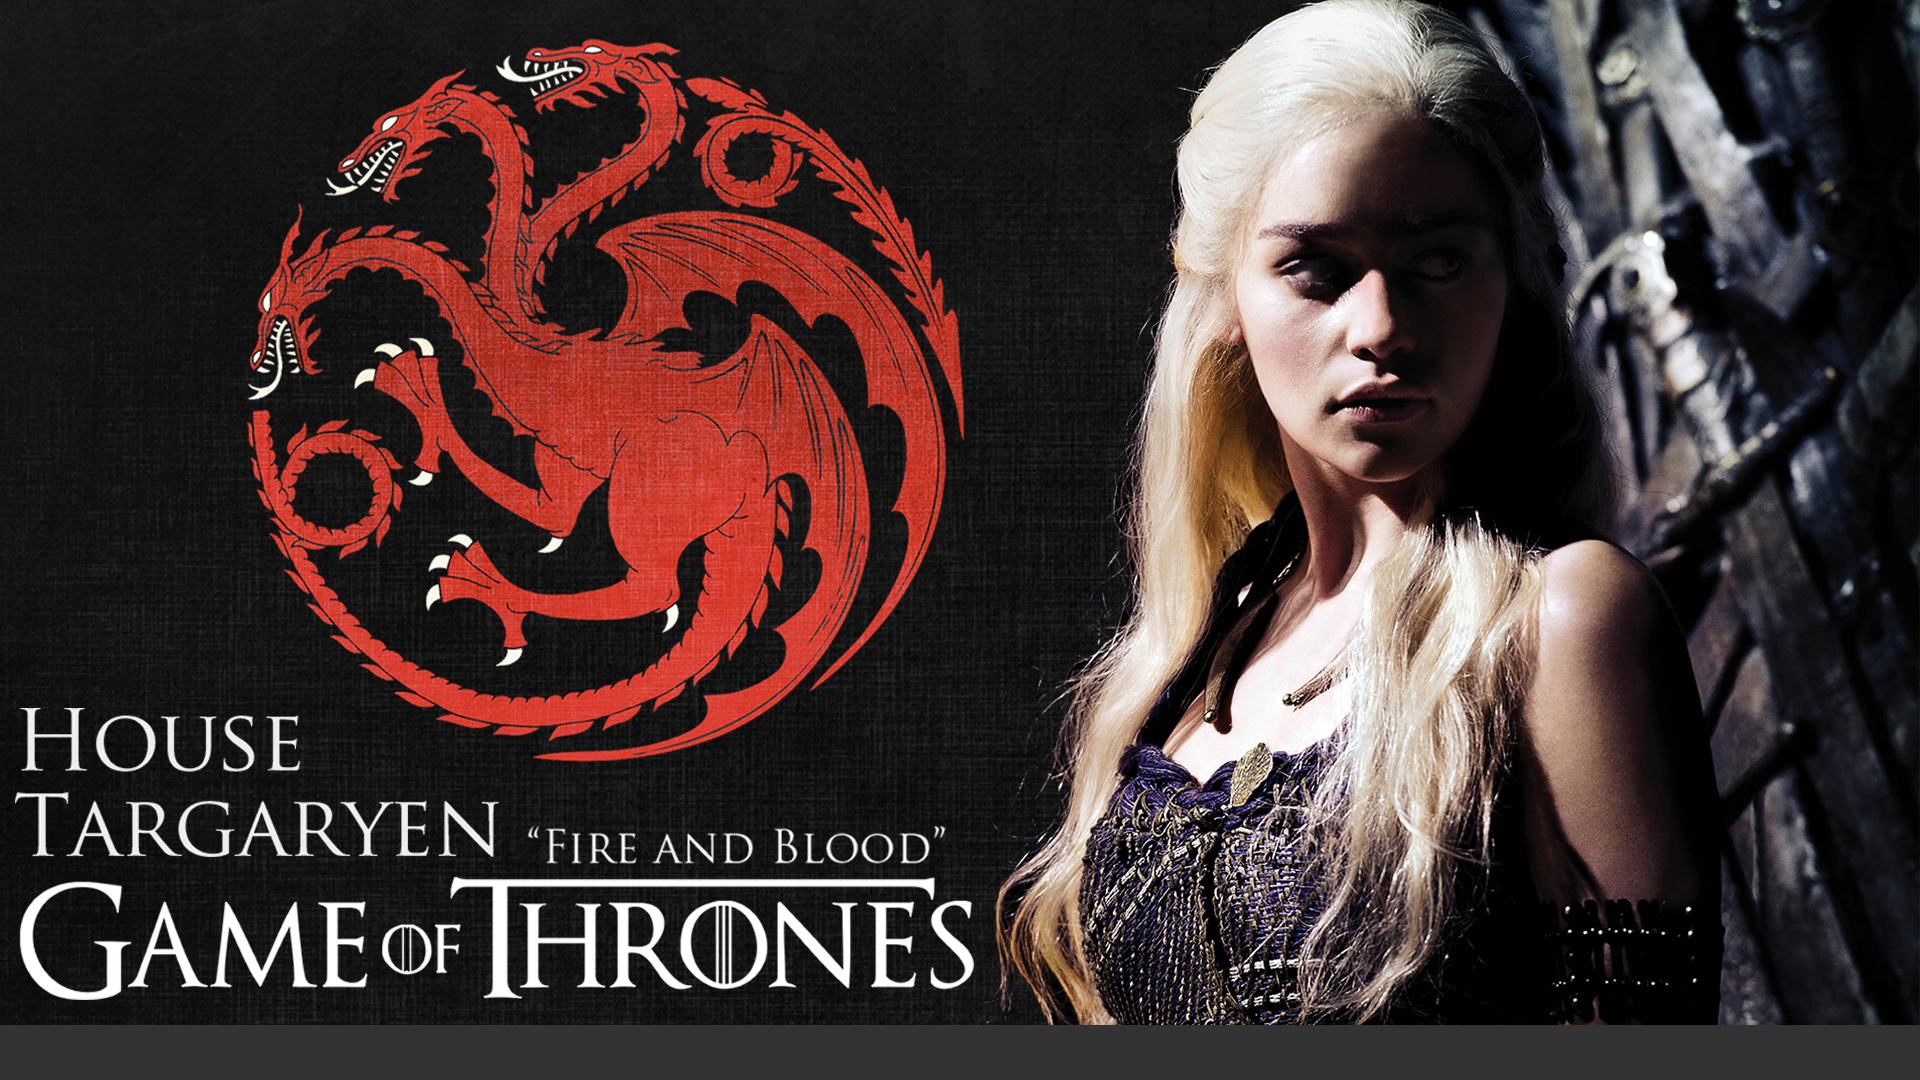 Google chrome themes game of thrones - Game Of Thrones House Targaryen Wallpaper Hd By Davef30